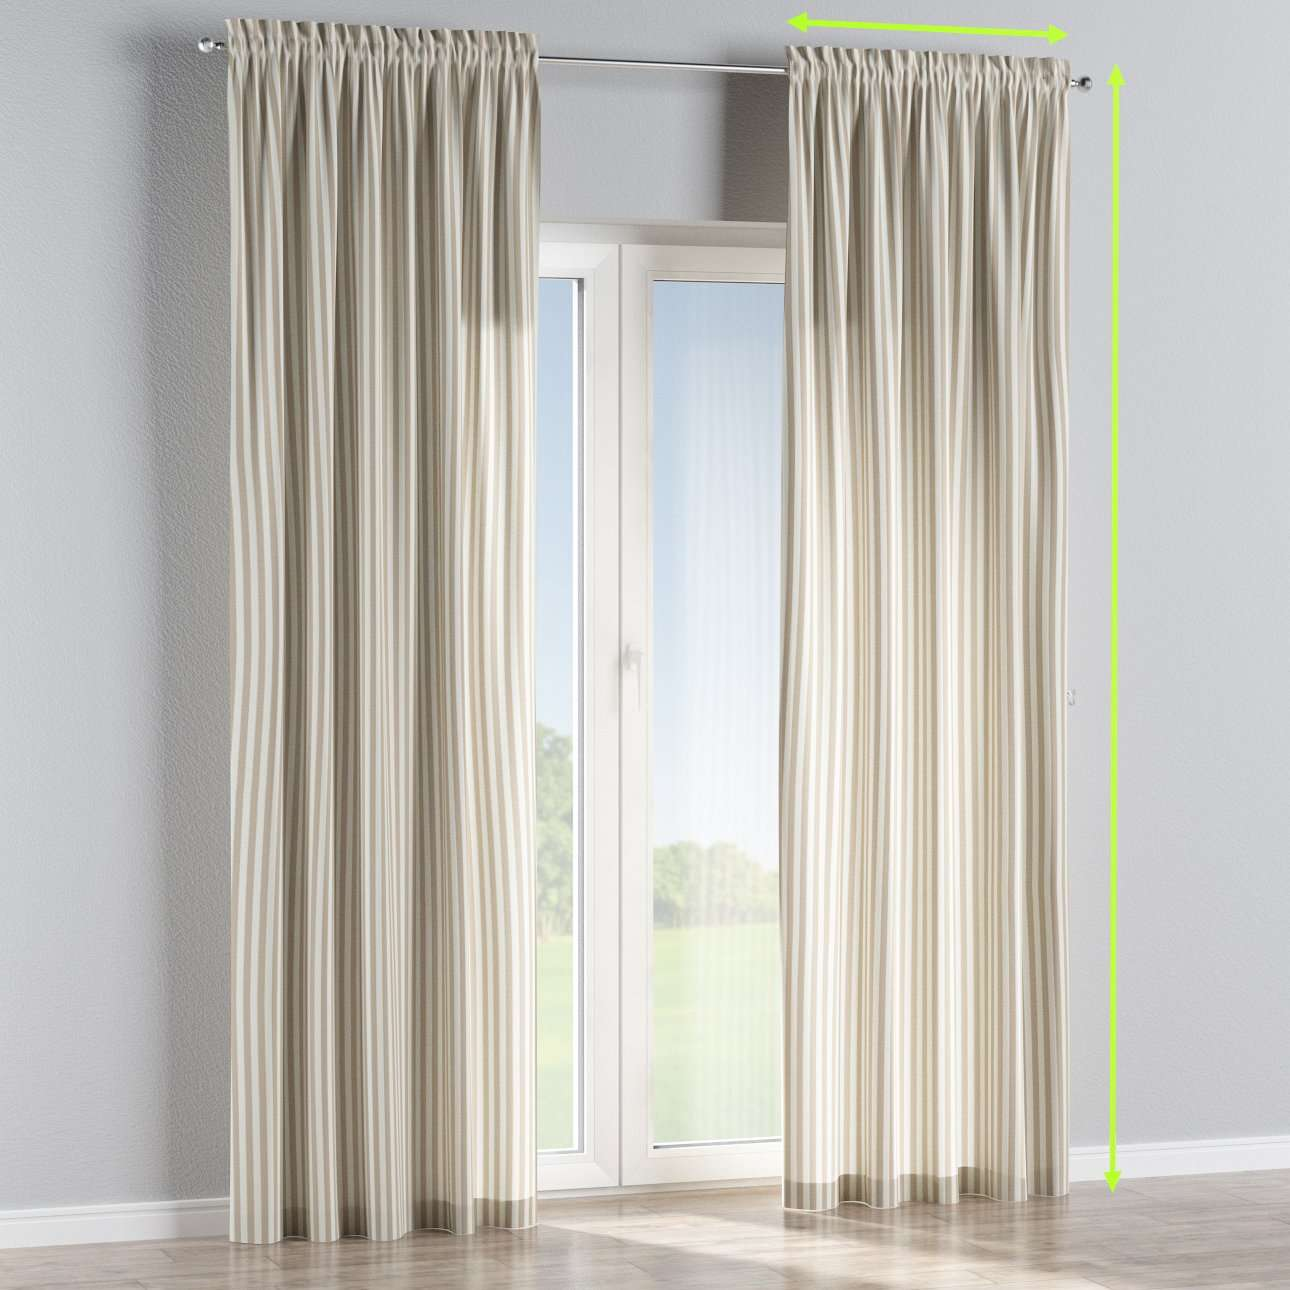 Slot and frill lined curtains in collection Quadro, fabric: 136-07